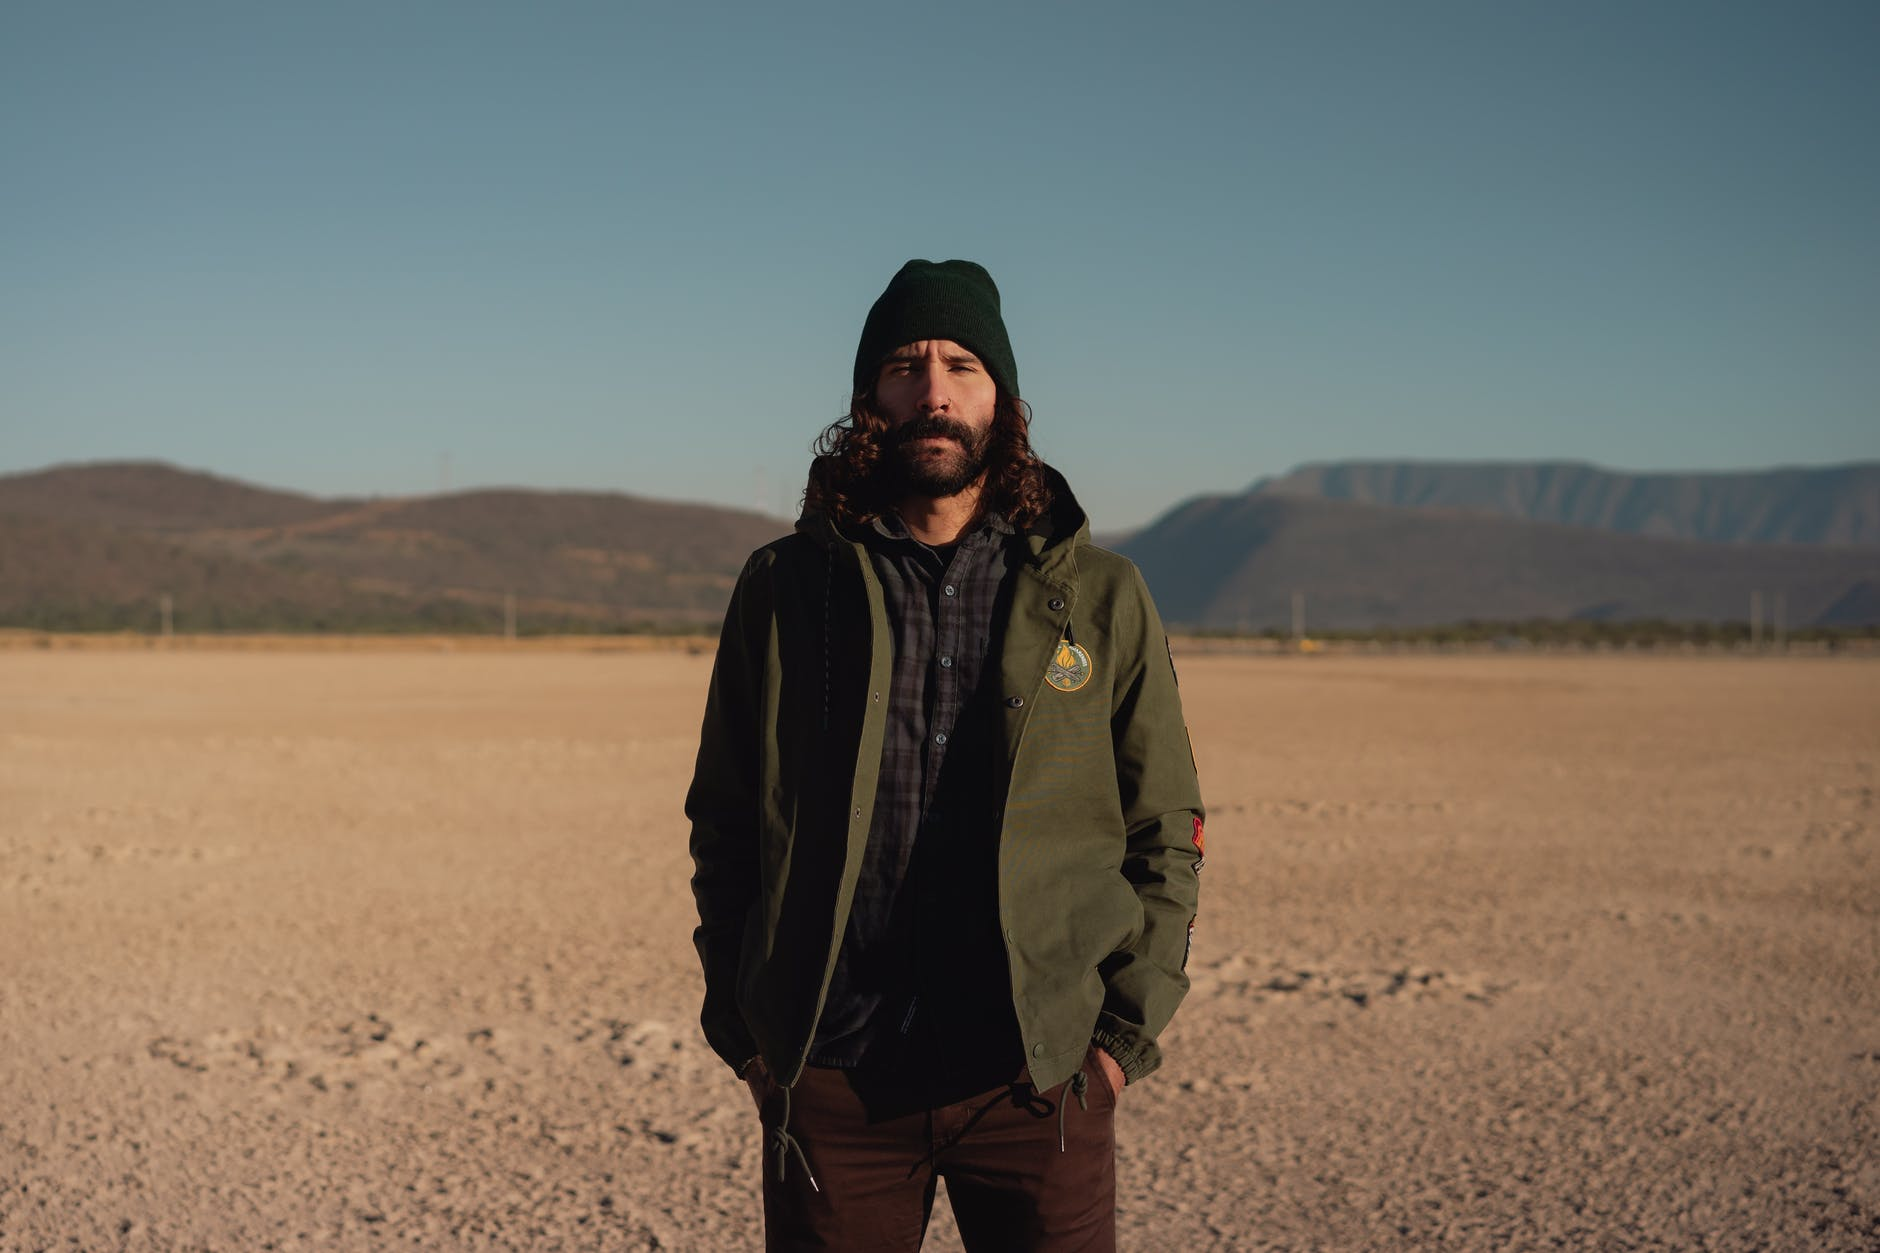 bearded man standing in desert valley surrounded by hills